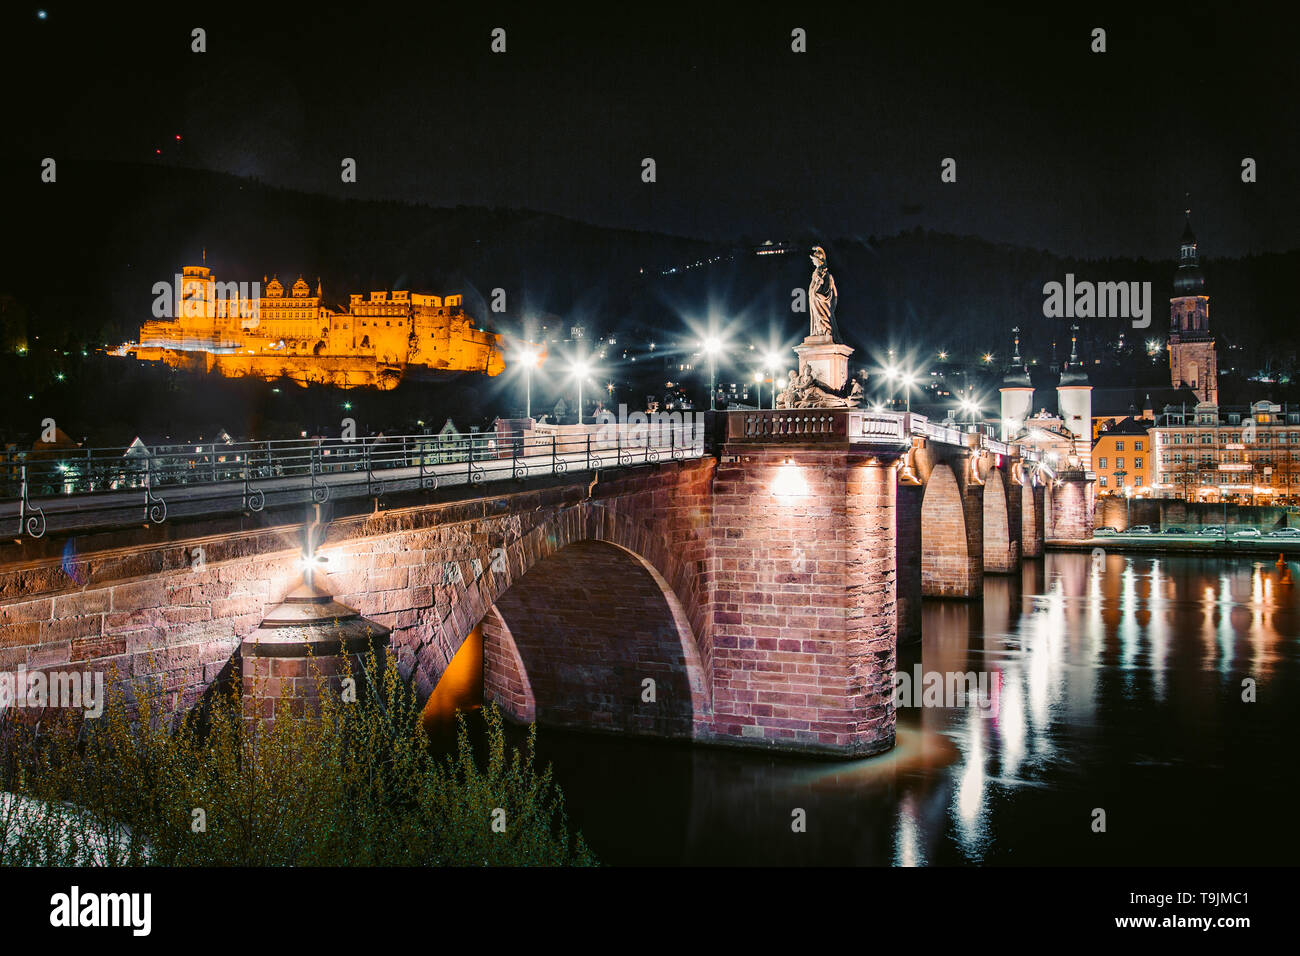 Panoramic view of the old town of Heidelberg reflecting in beautiful Neckar river at night, Baden-Wuerttemberg, Germany - Stock Image